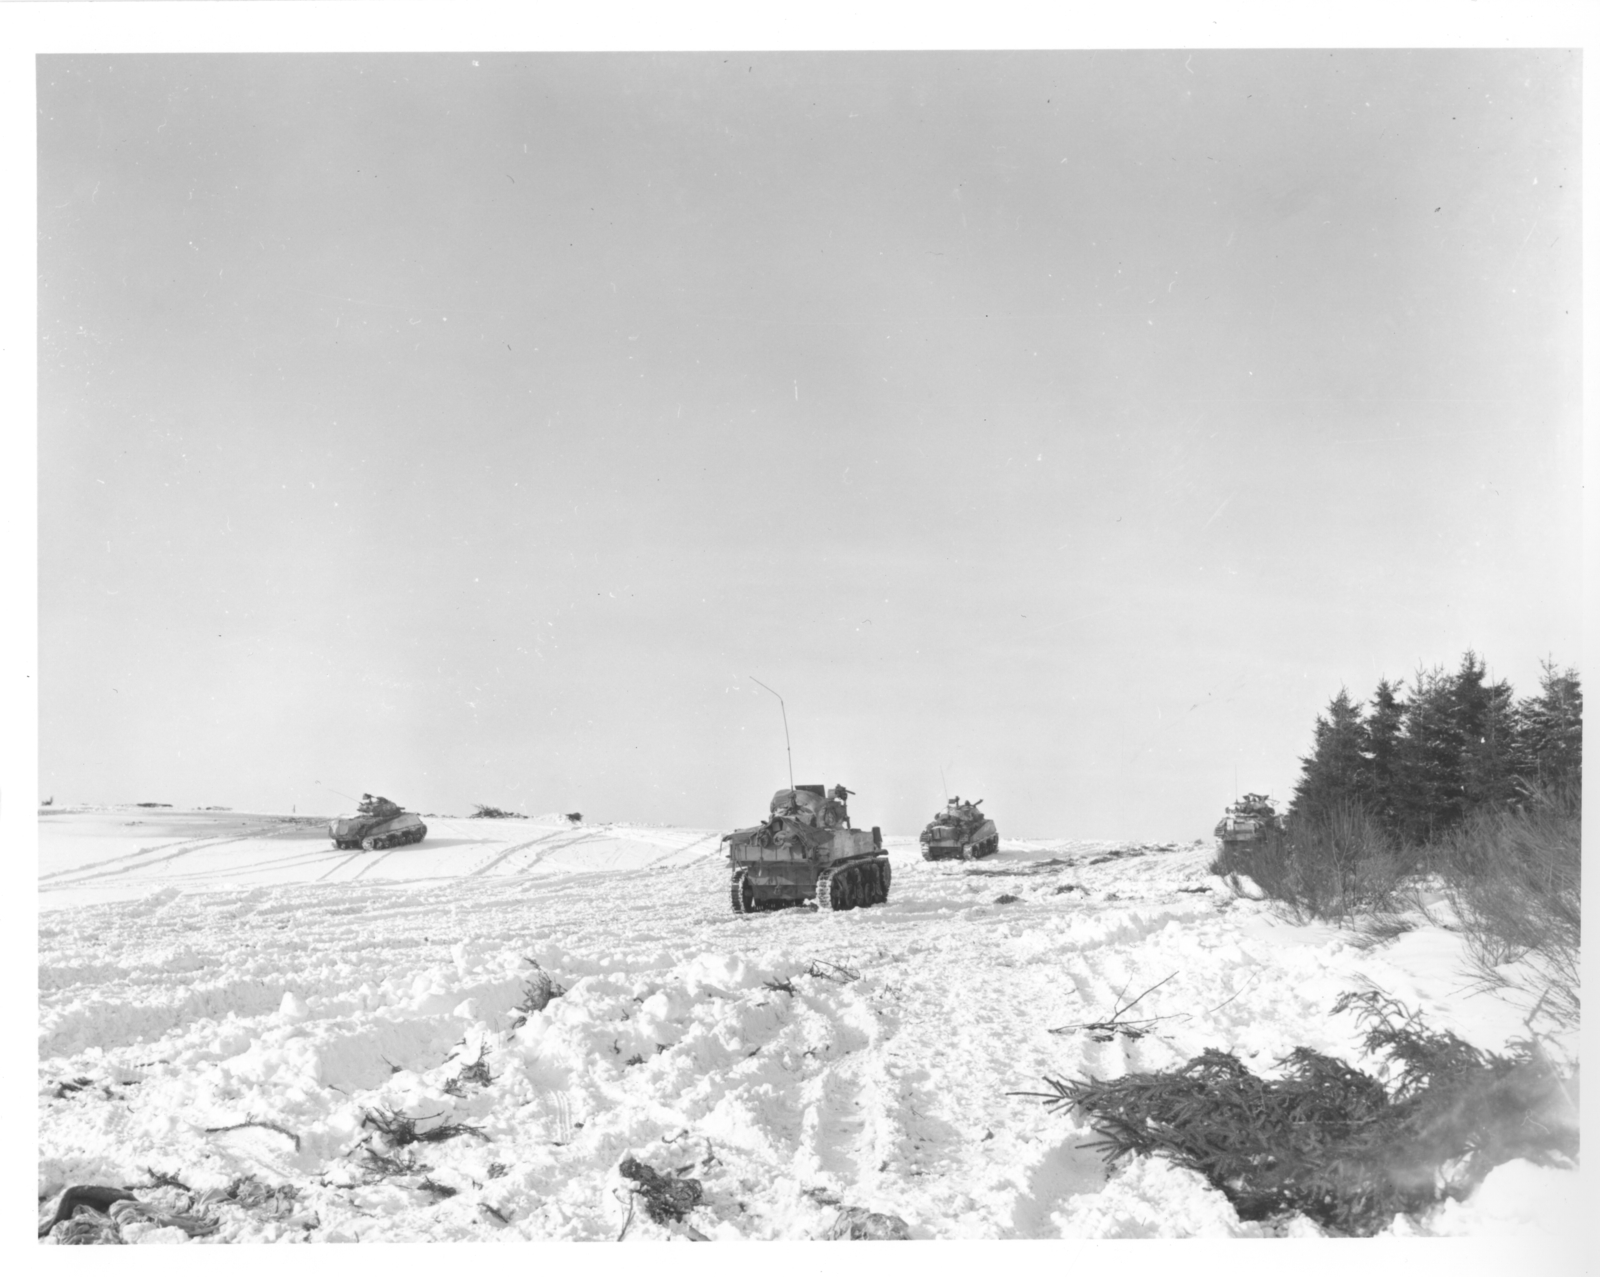 Photograph of Tanks of the 4th Armored Division